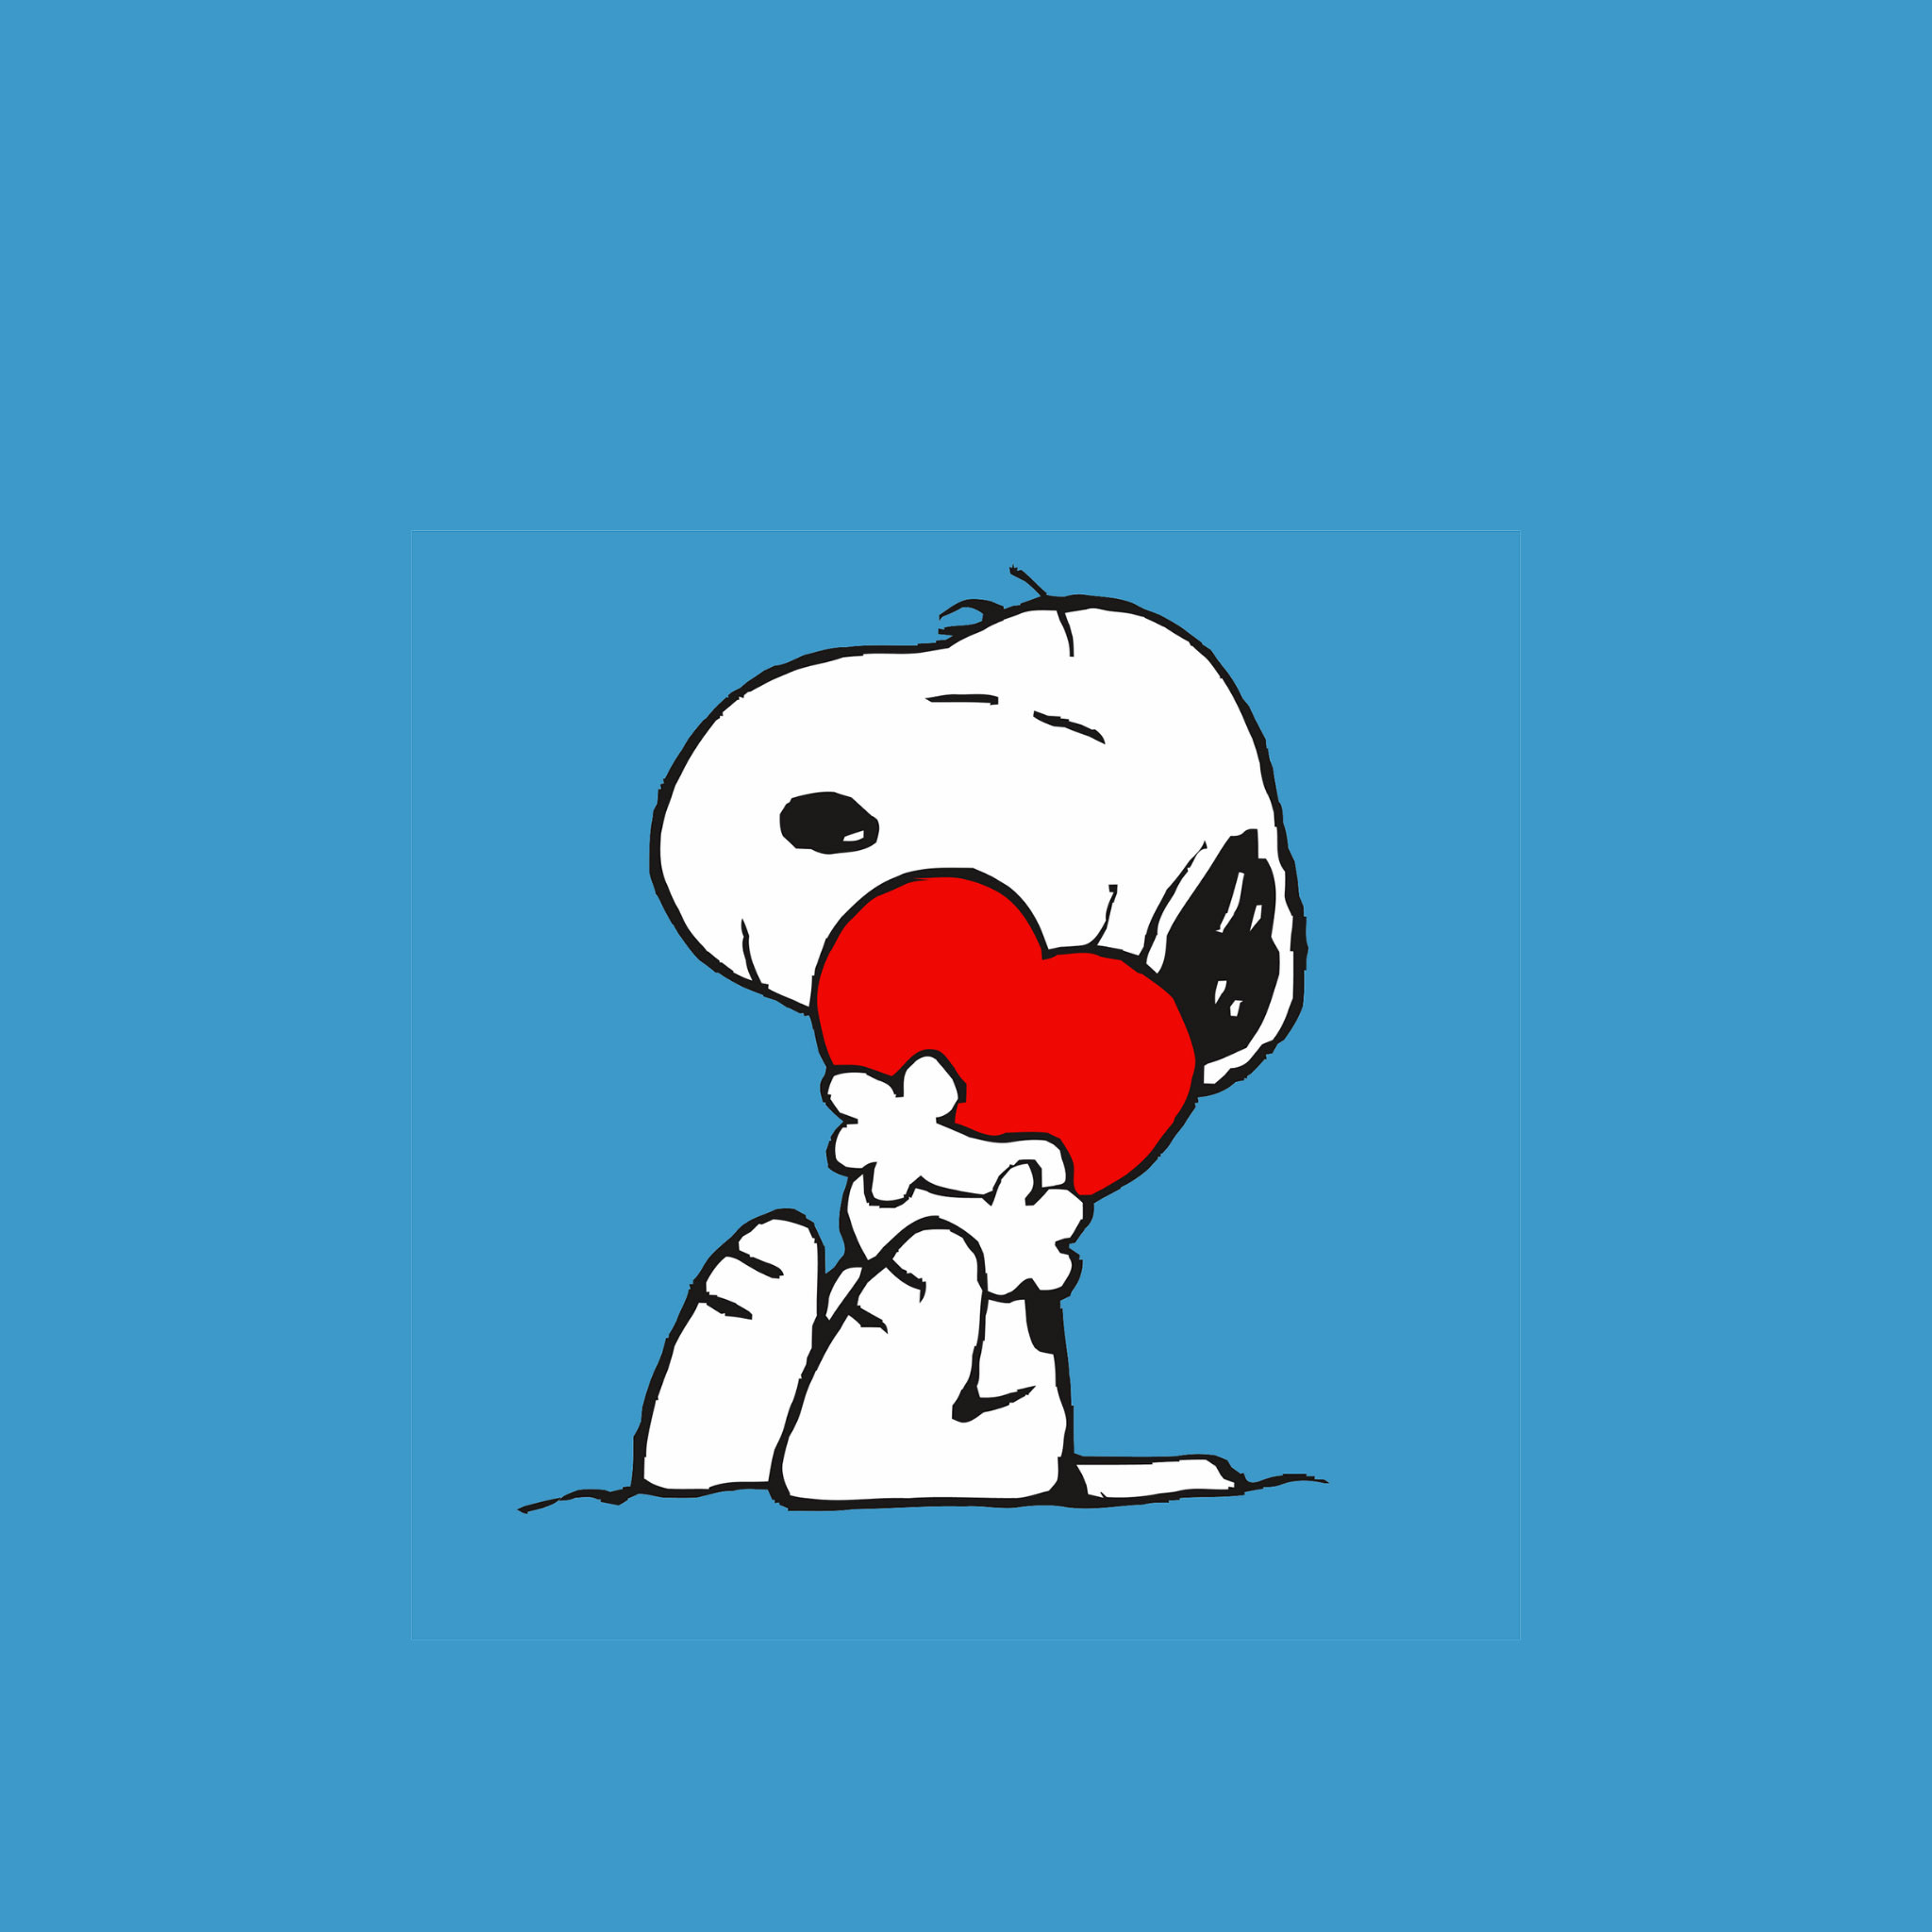 snoopy iphone 5c wallpaper